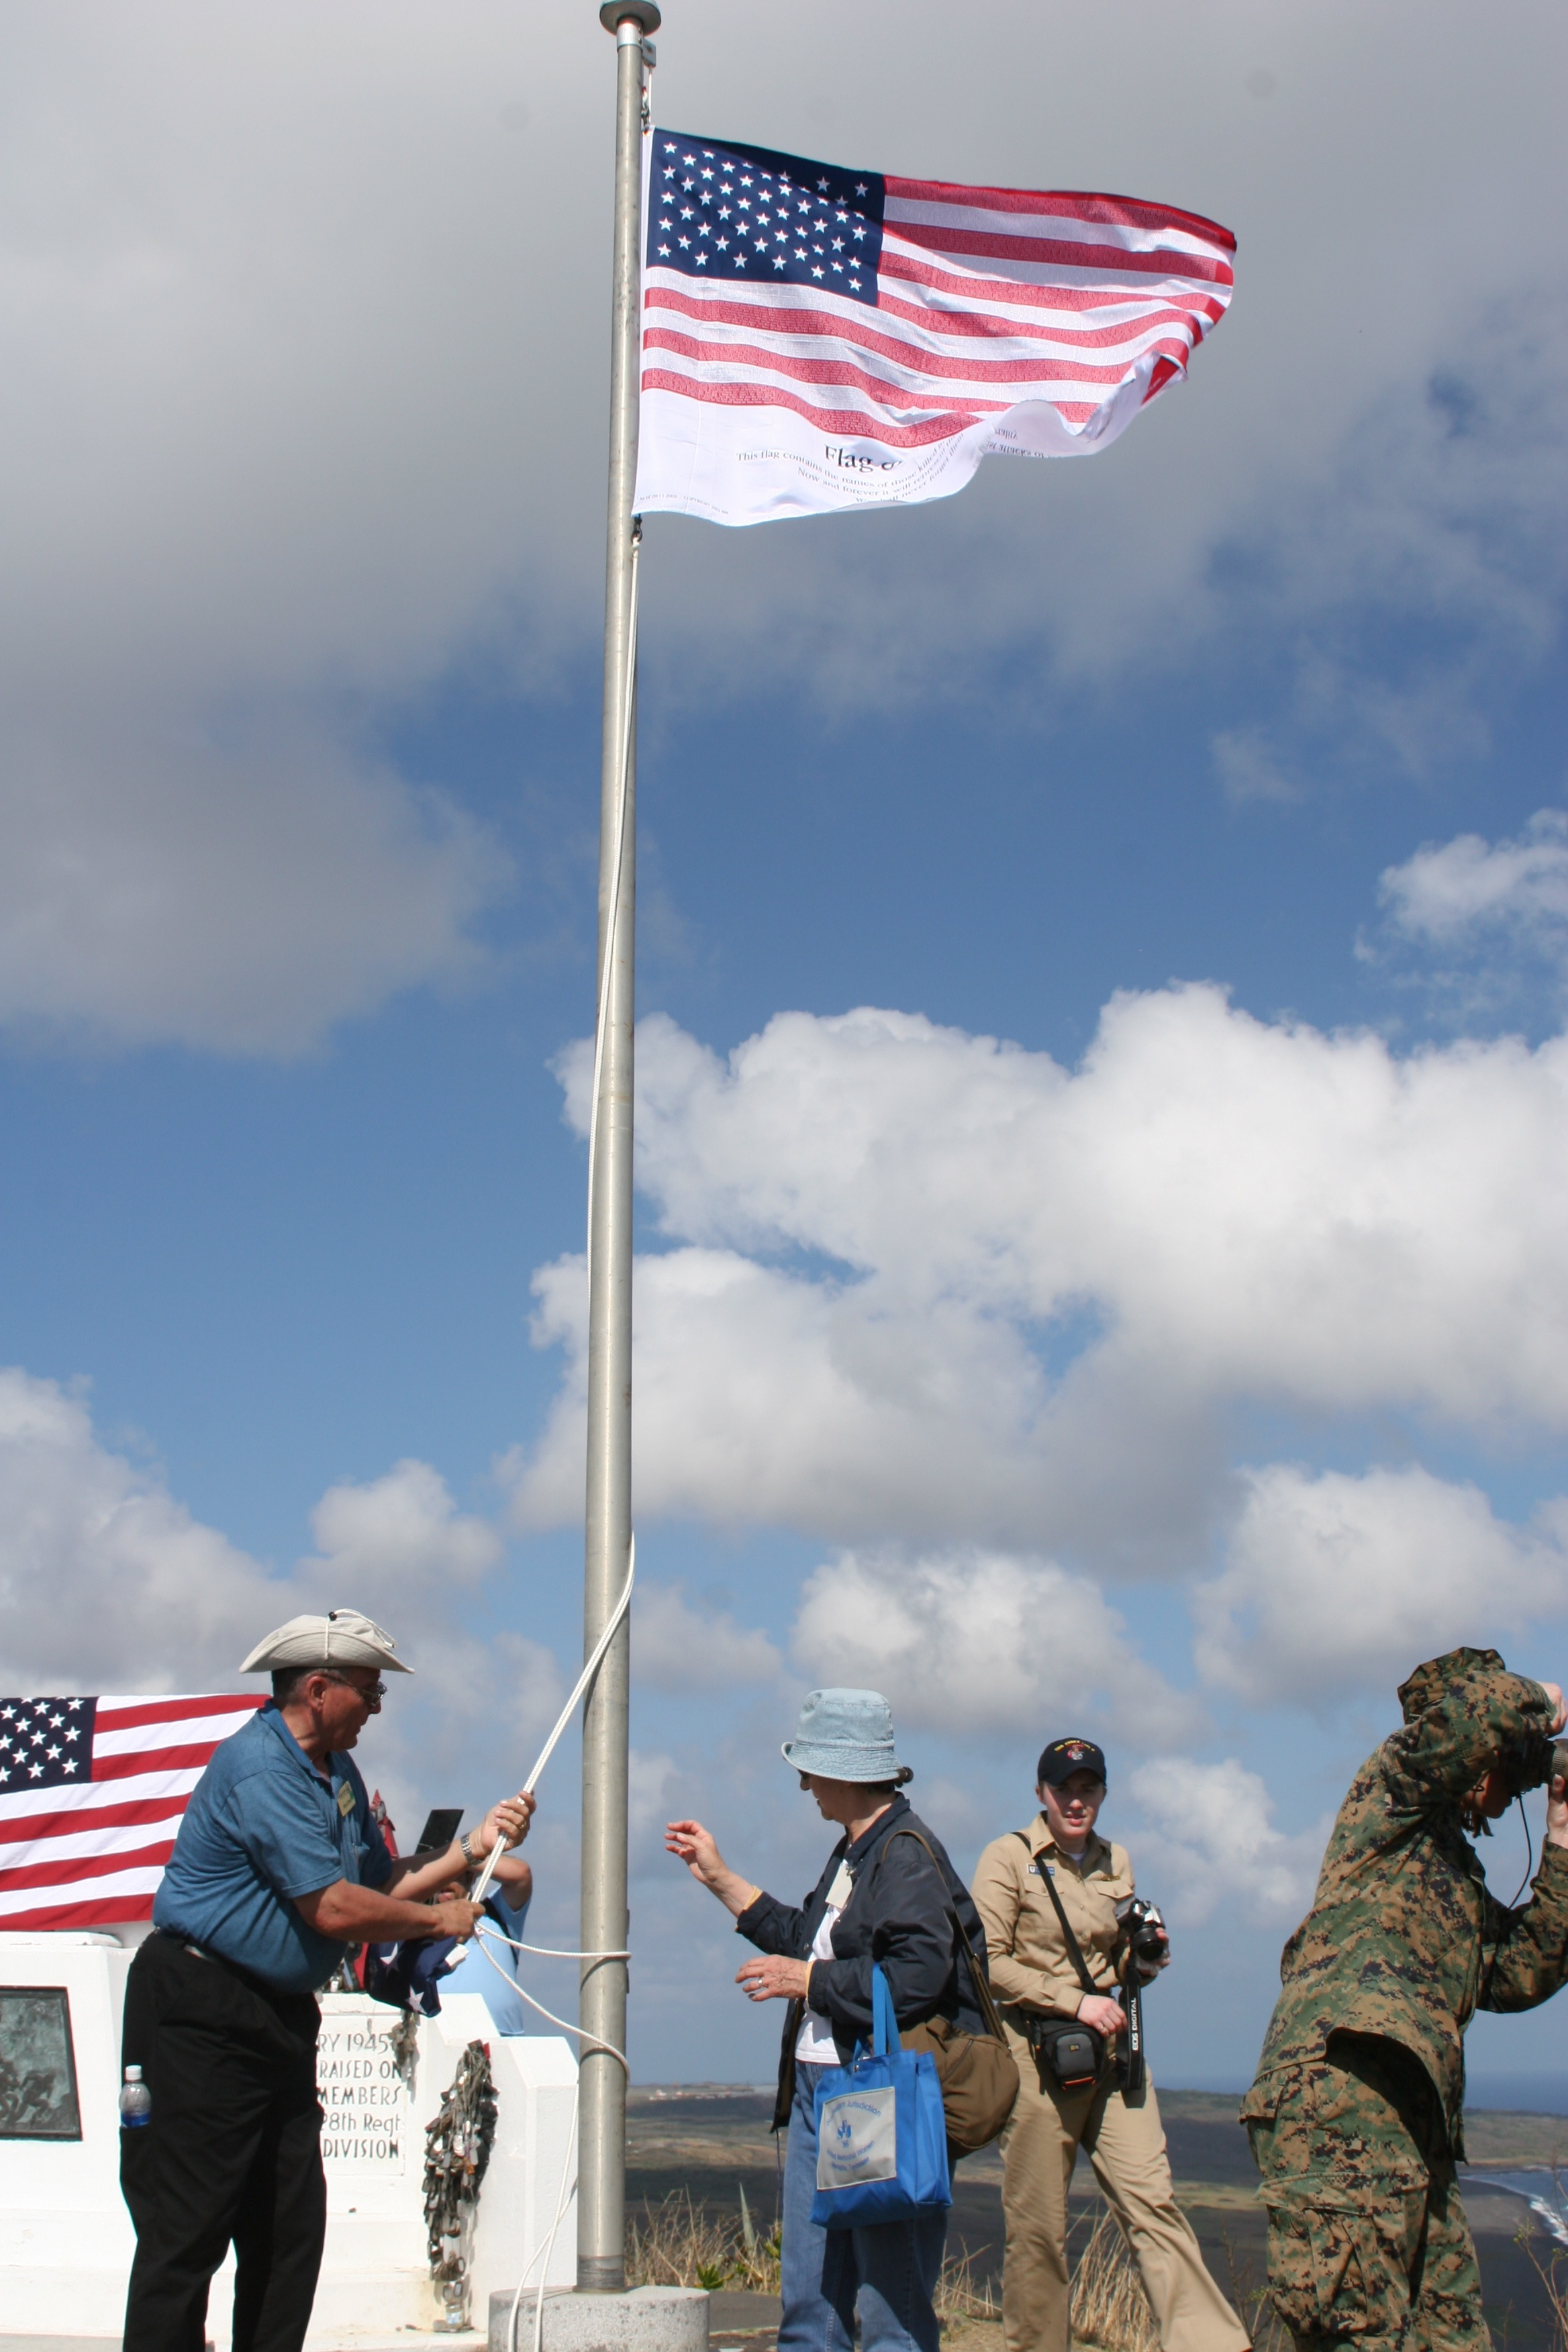 Guests raising flag on Iwo Jima